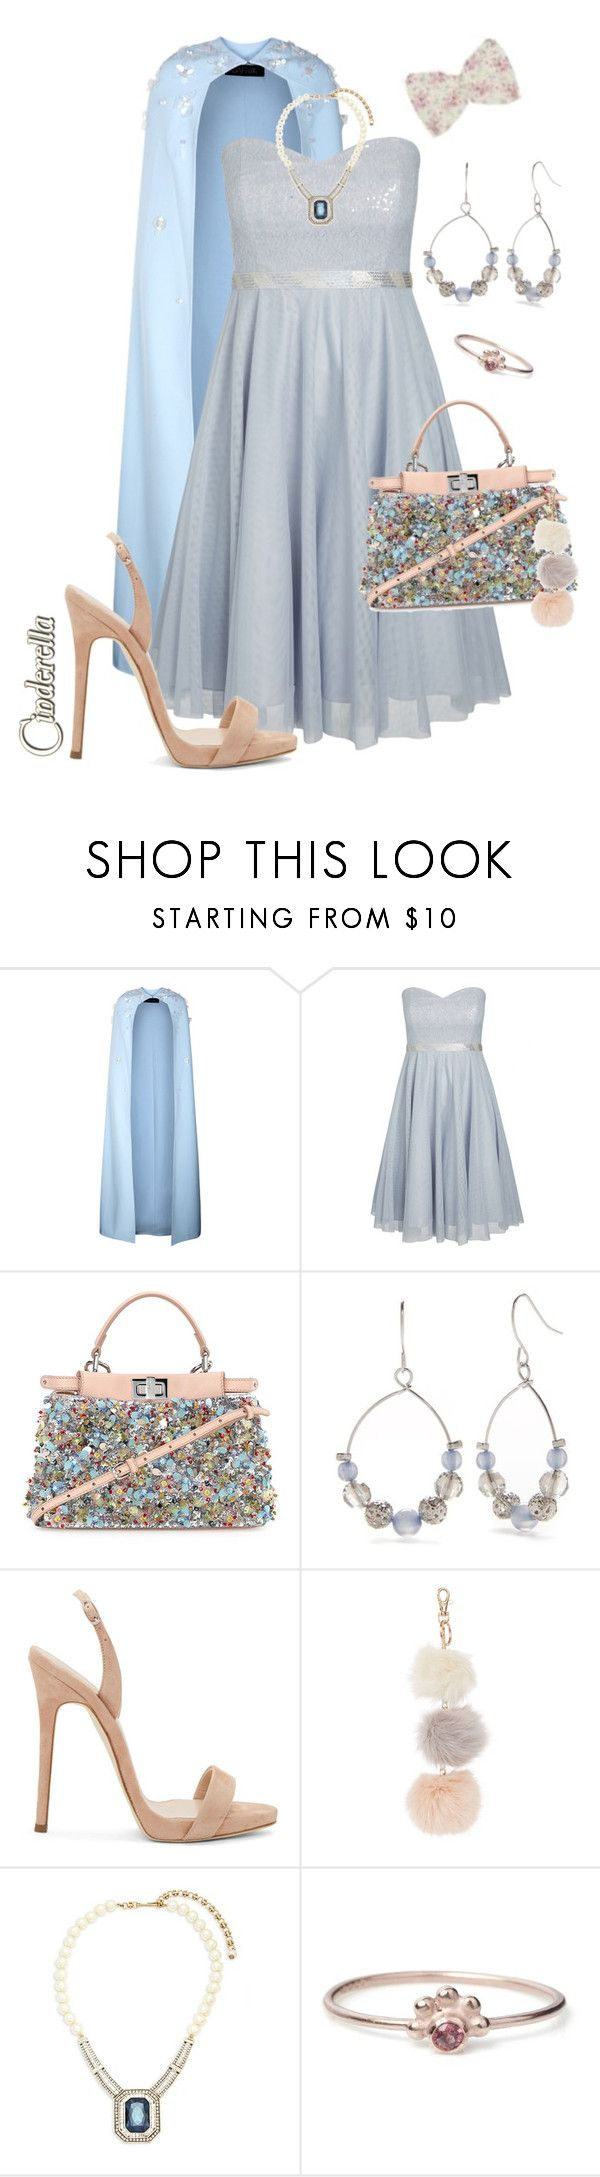 """Embellished Bag 💎👛👑"" by krgood7 ❤ liked on Polyvore featuring Safiyaa, City Chic, Fendi, Kim Rogers, Giuseppe Zanotti, Heidi Daus, Maro and plus size dresses"